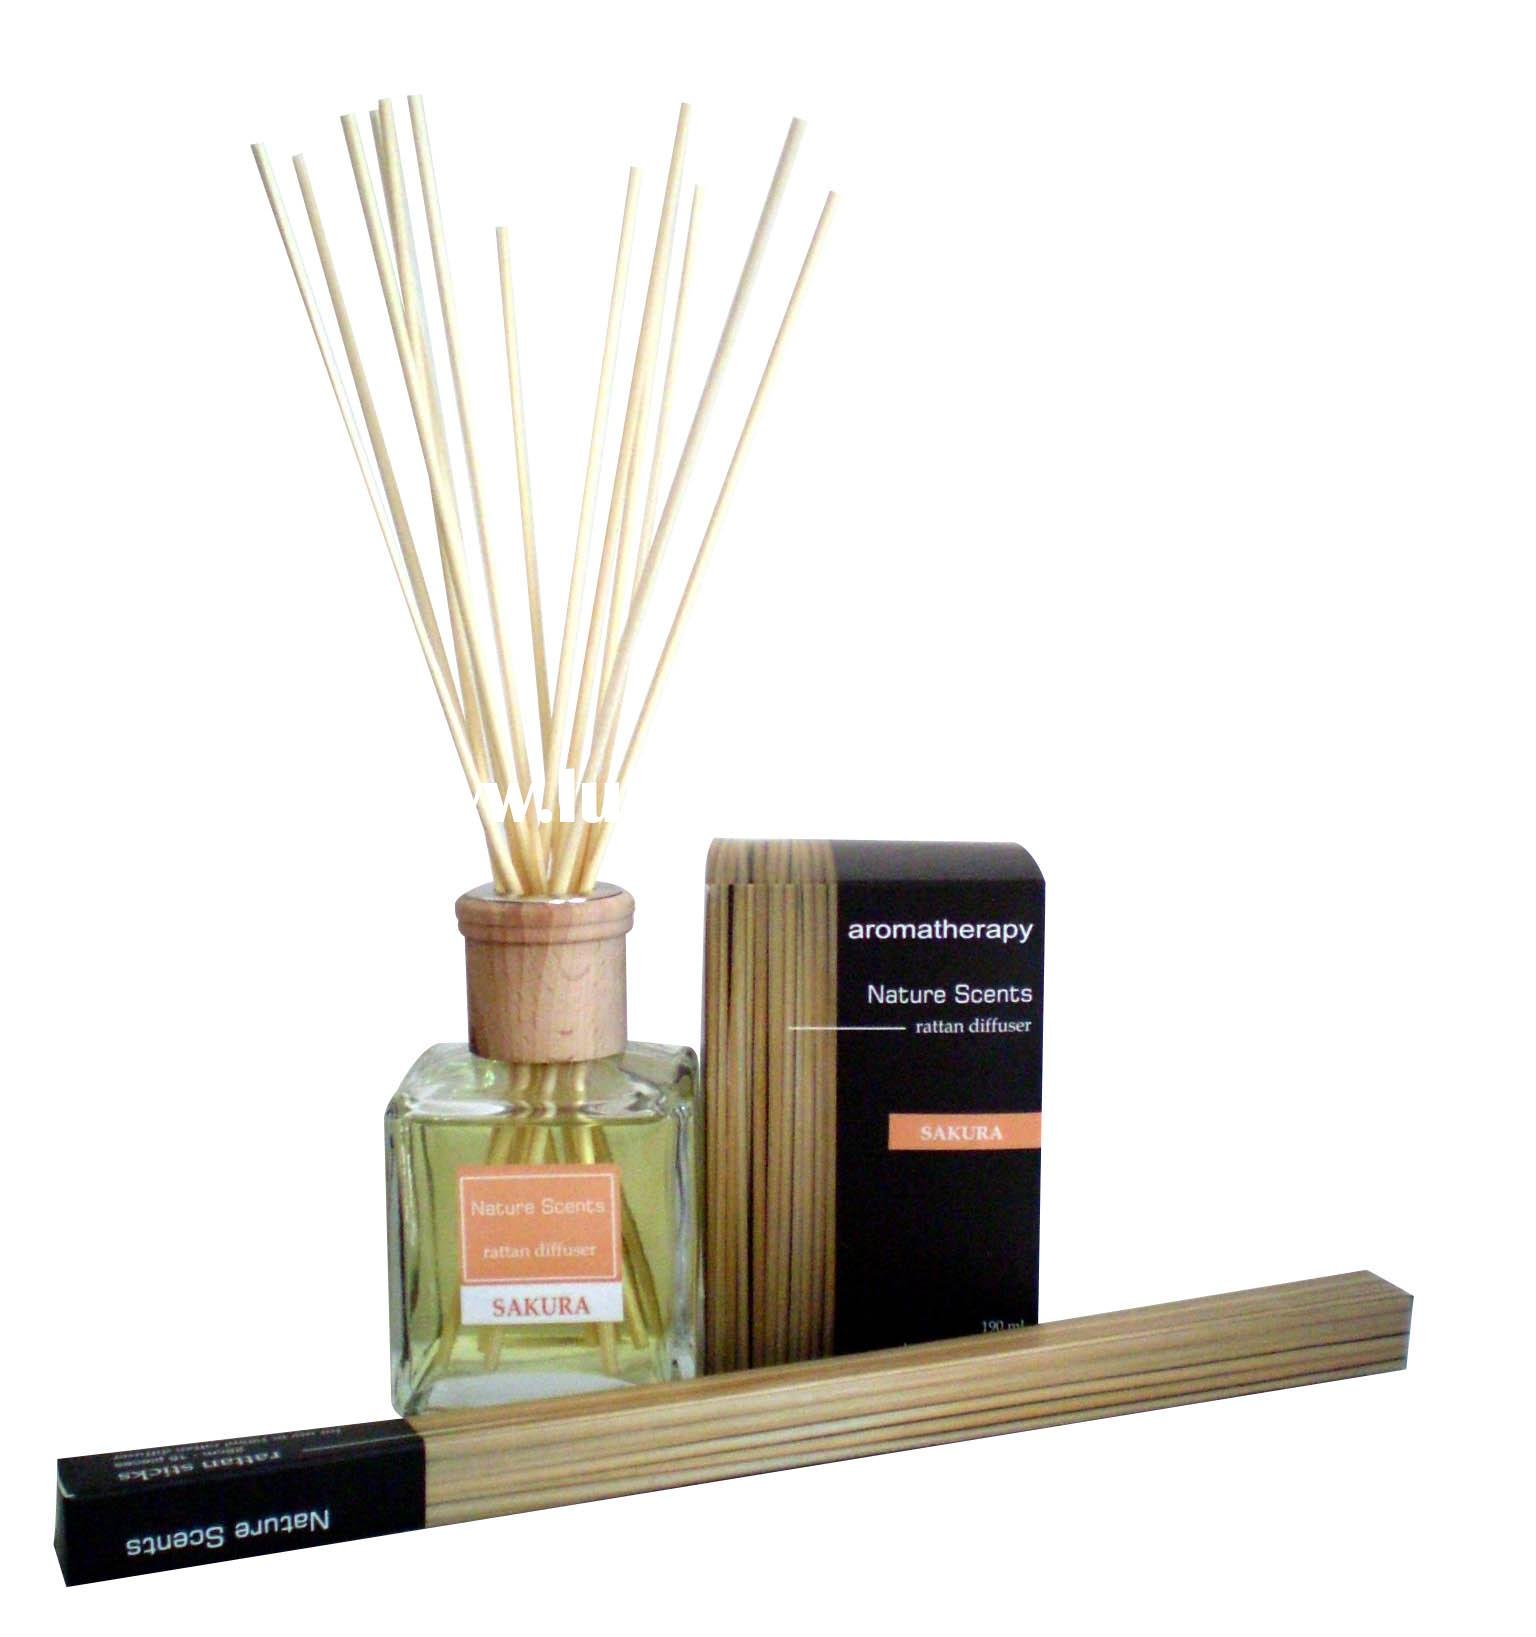 Safe To Use Oil Diffuser Sticks In Small Room